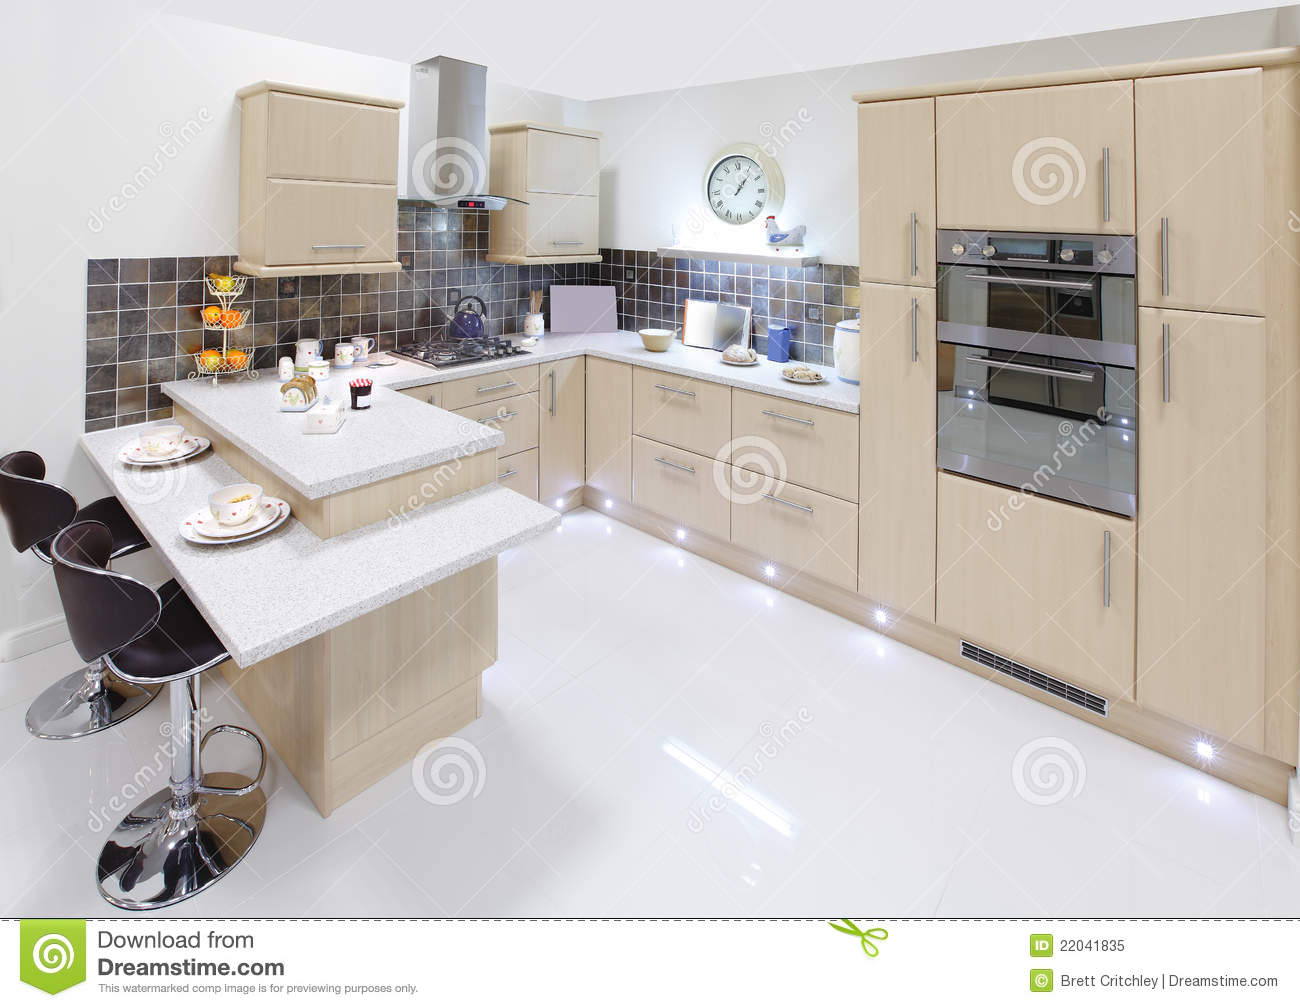 Modern home interior kitchen royalty free stock photo for Modern house kitchen